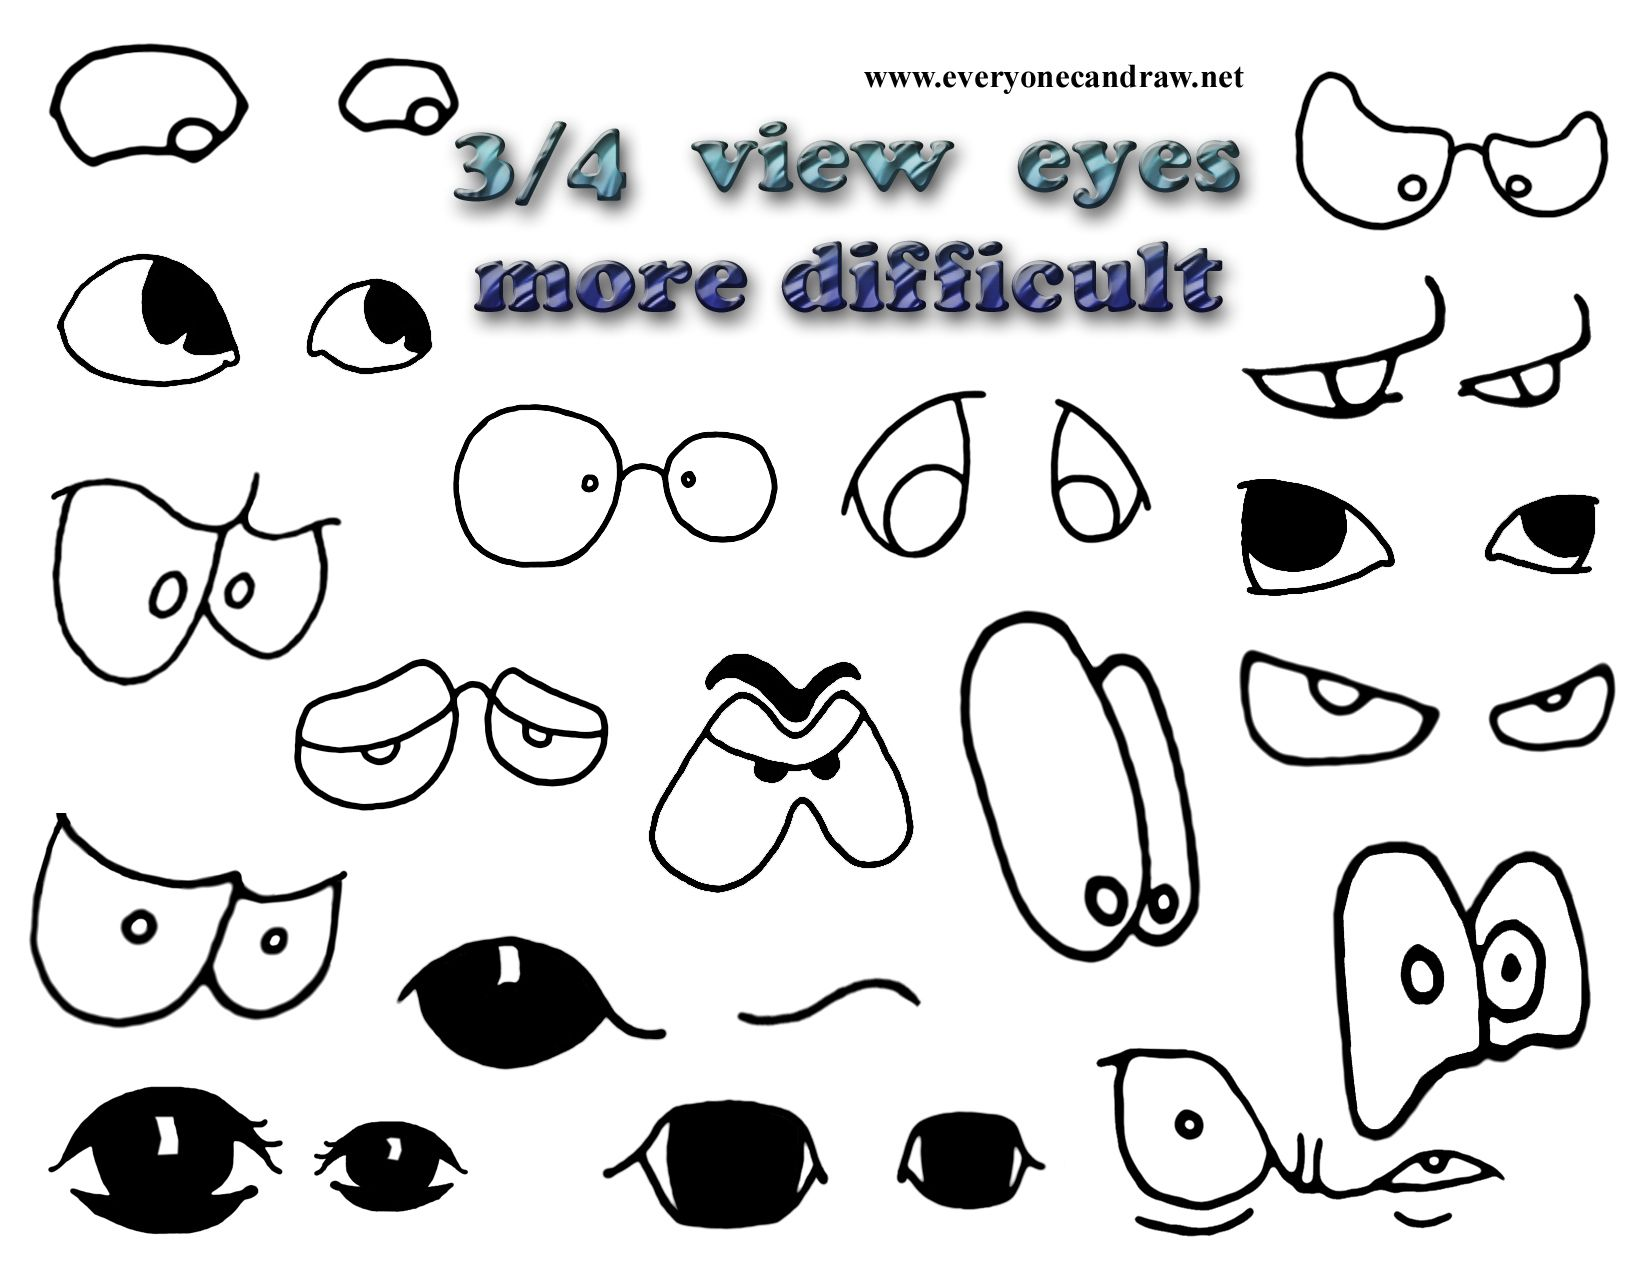 Three Quarter View Cartoon Eyes Doodle Pages Cartoon Eyes Coloring Book Pages